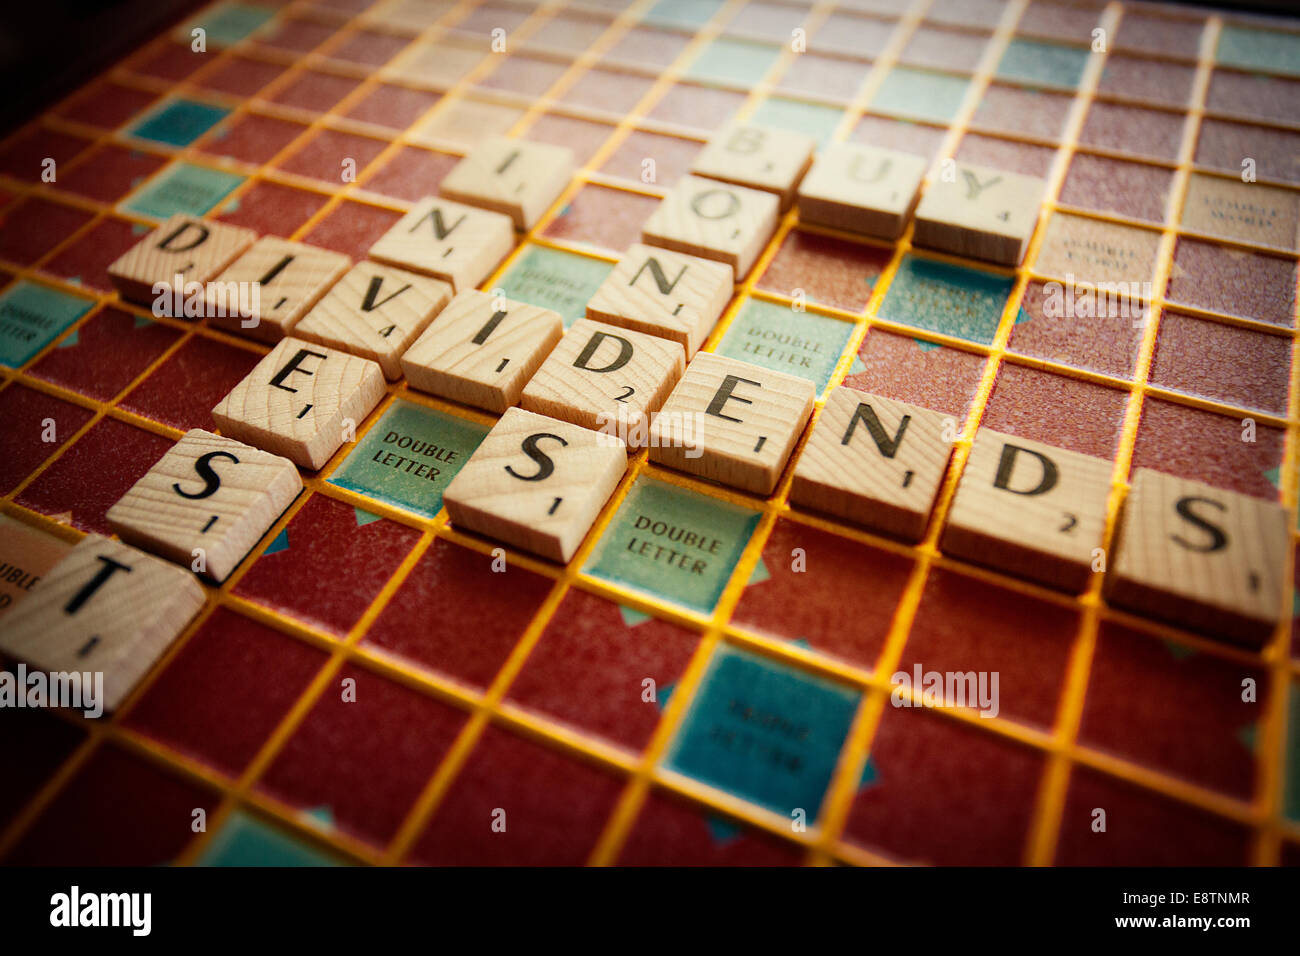 Financial terms spelled out on a Scrabble board - Stock Image